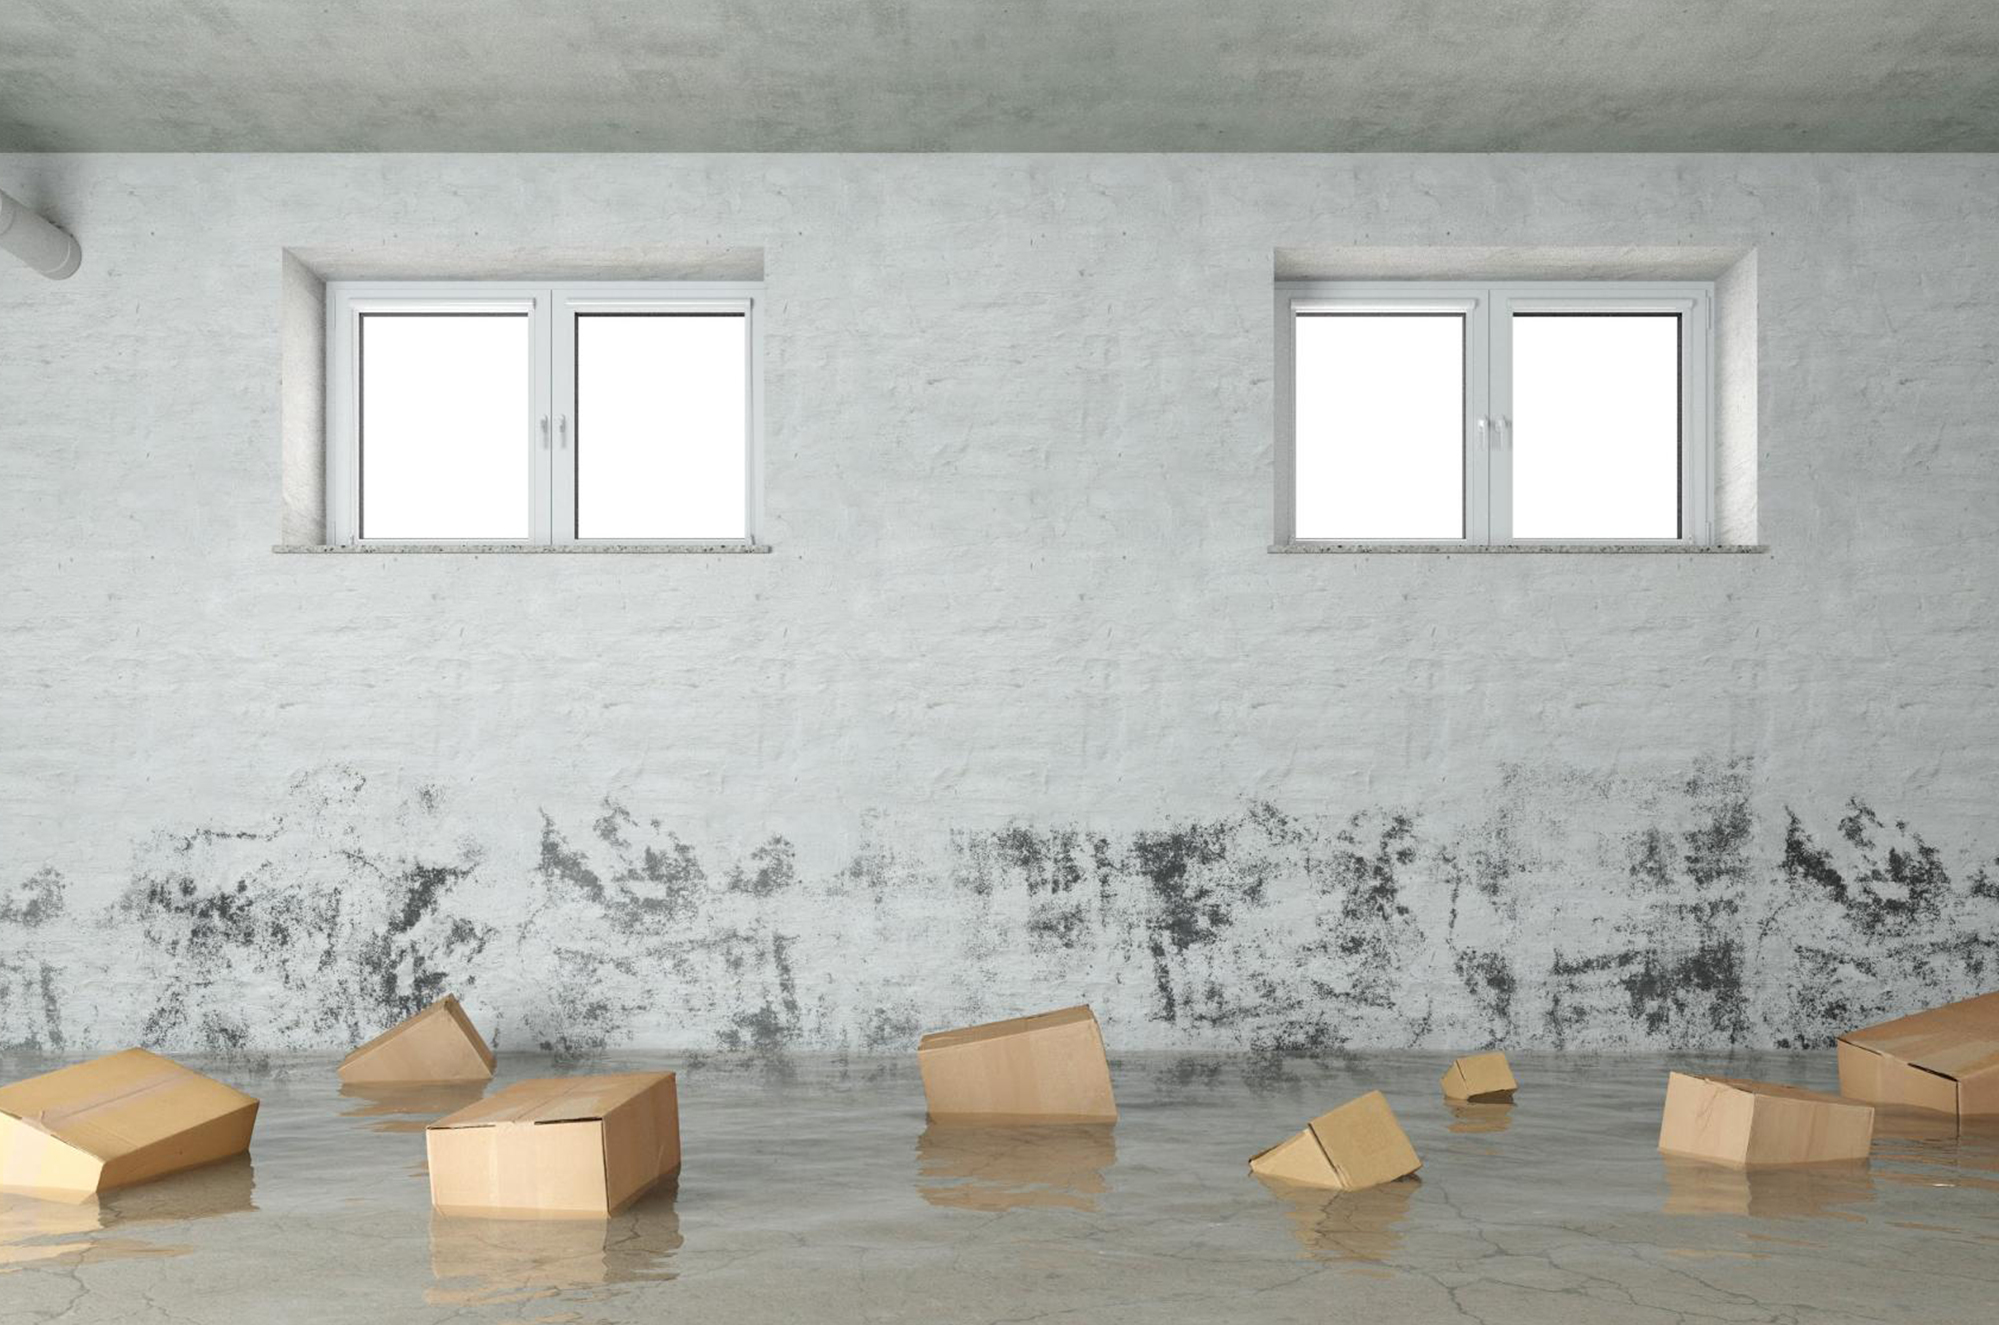 A flooded basement with extensive water damage and floating boxes in the water